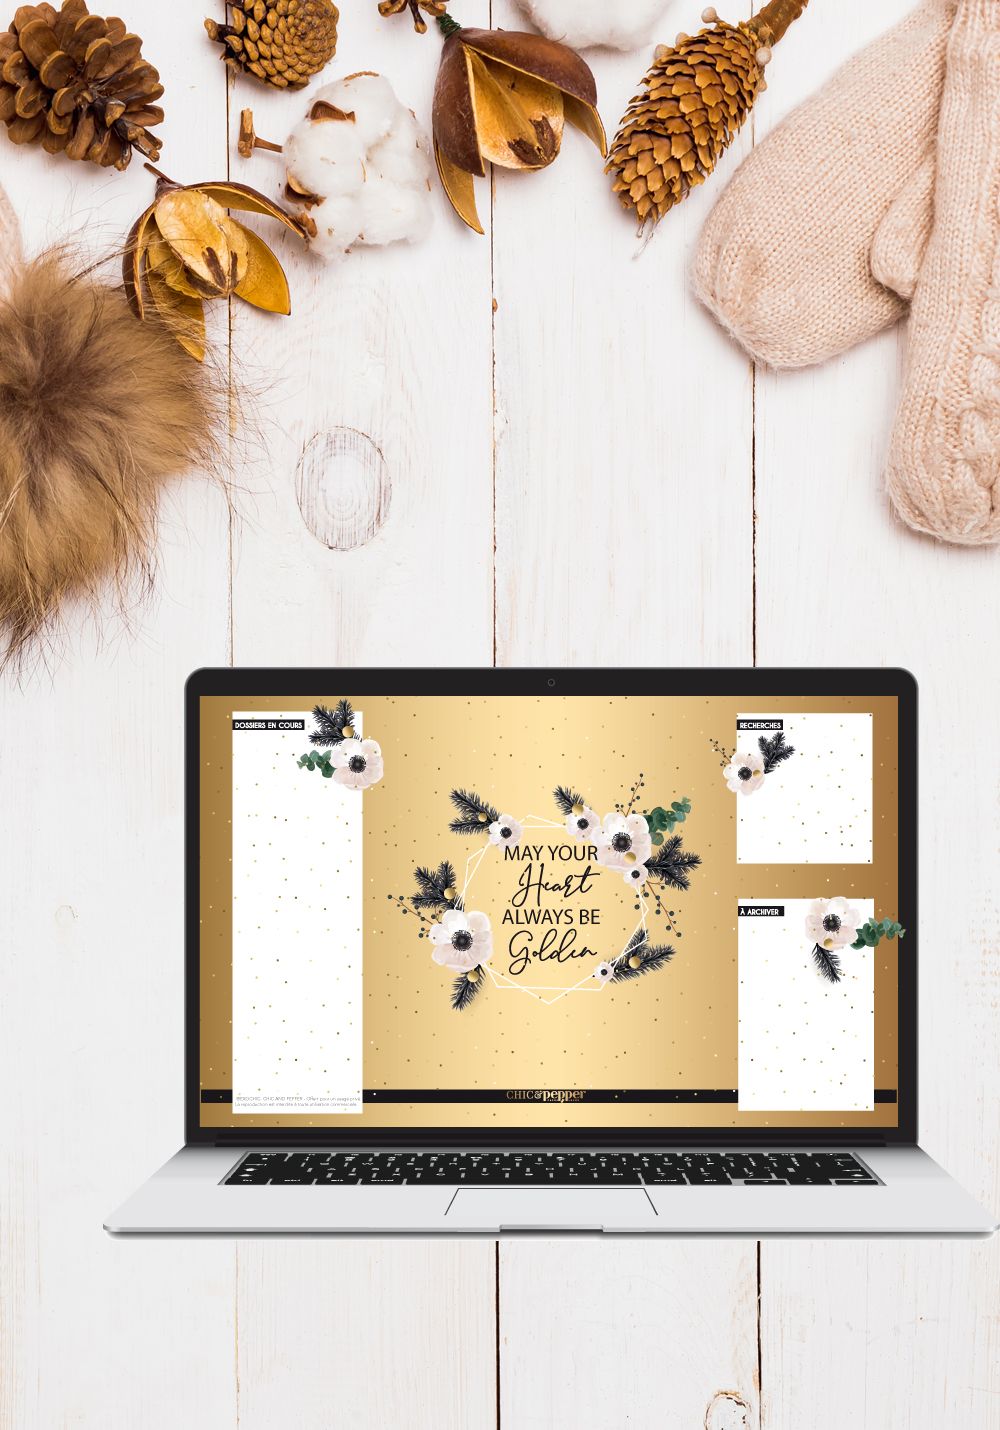 Air Chic Design:disque externe:EXOChic:1 -POSTS:1 - ARTICLES:2018:12 - DECEMBRE:01 -CALENDRIER FOND ECRAN:image blog:fond ecran calendrier decembre exochic chic and pepper 3.jpg